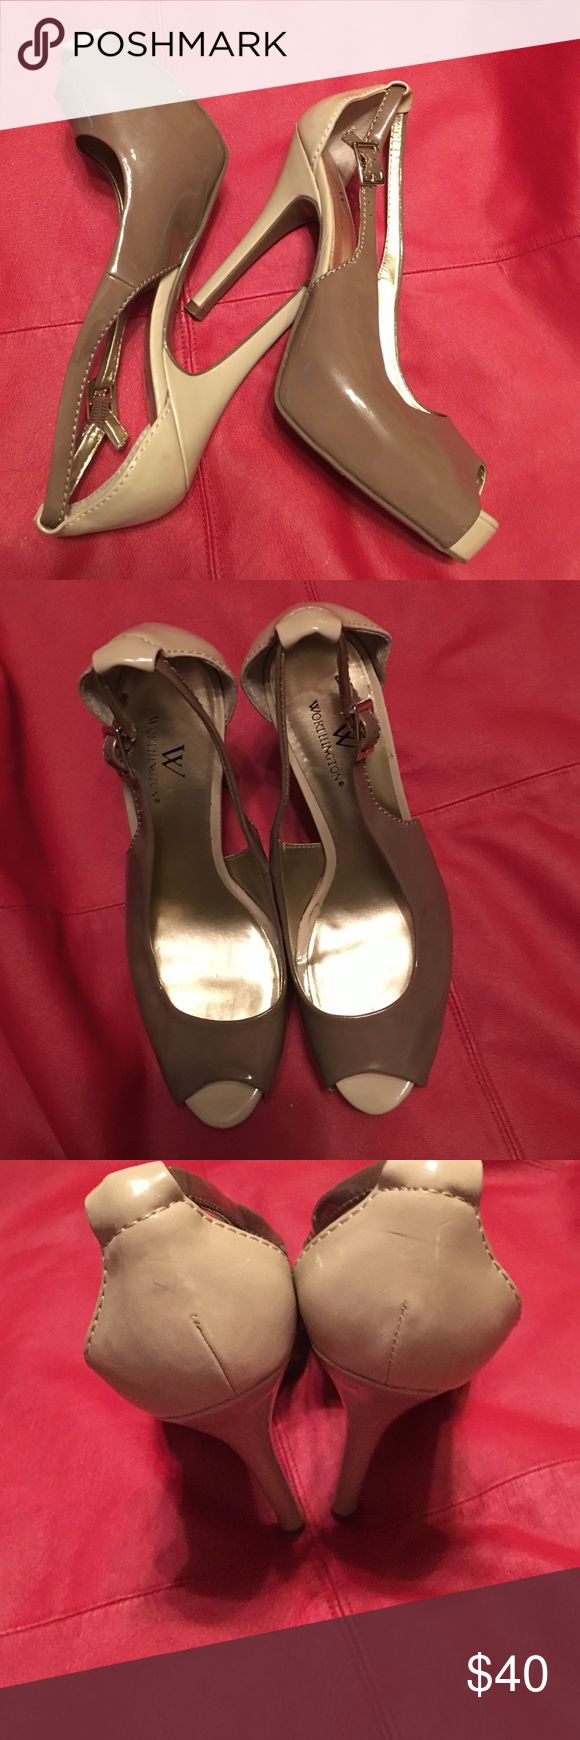 Two tone heels Worthington heels worn only a few times excellent condition Worthington Shoes Heels